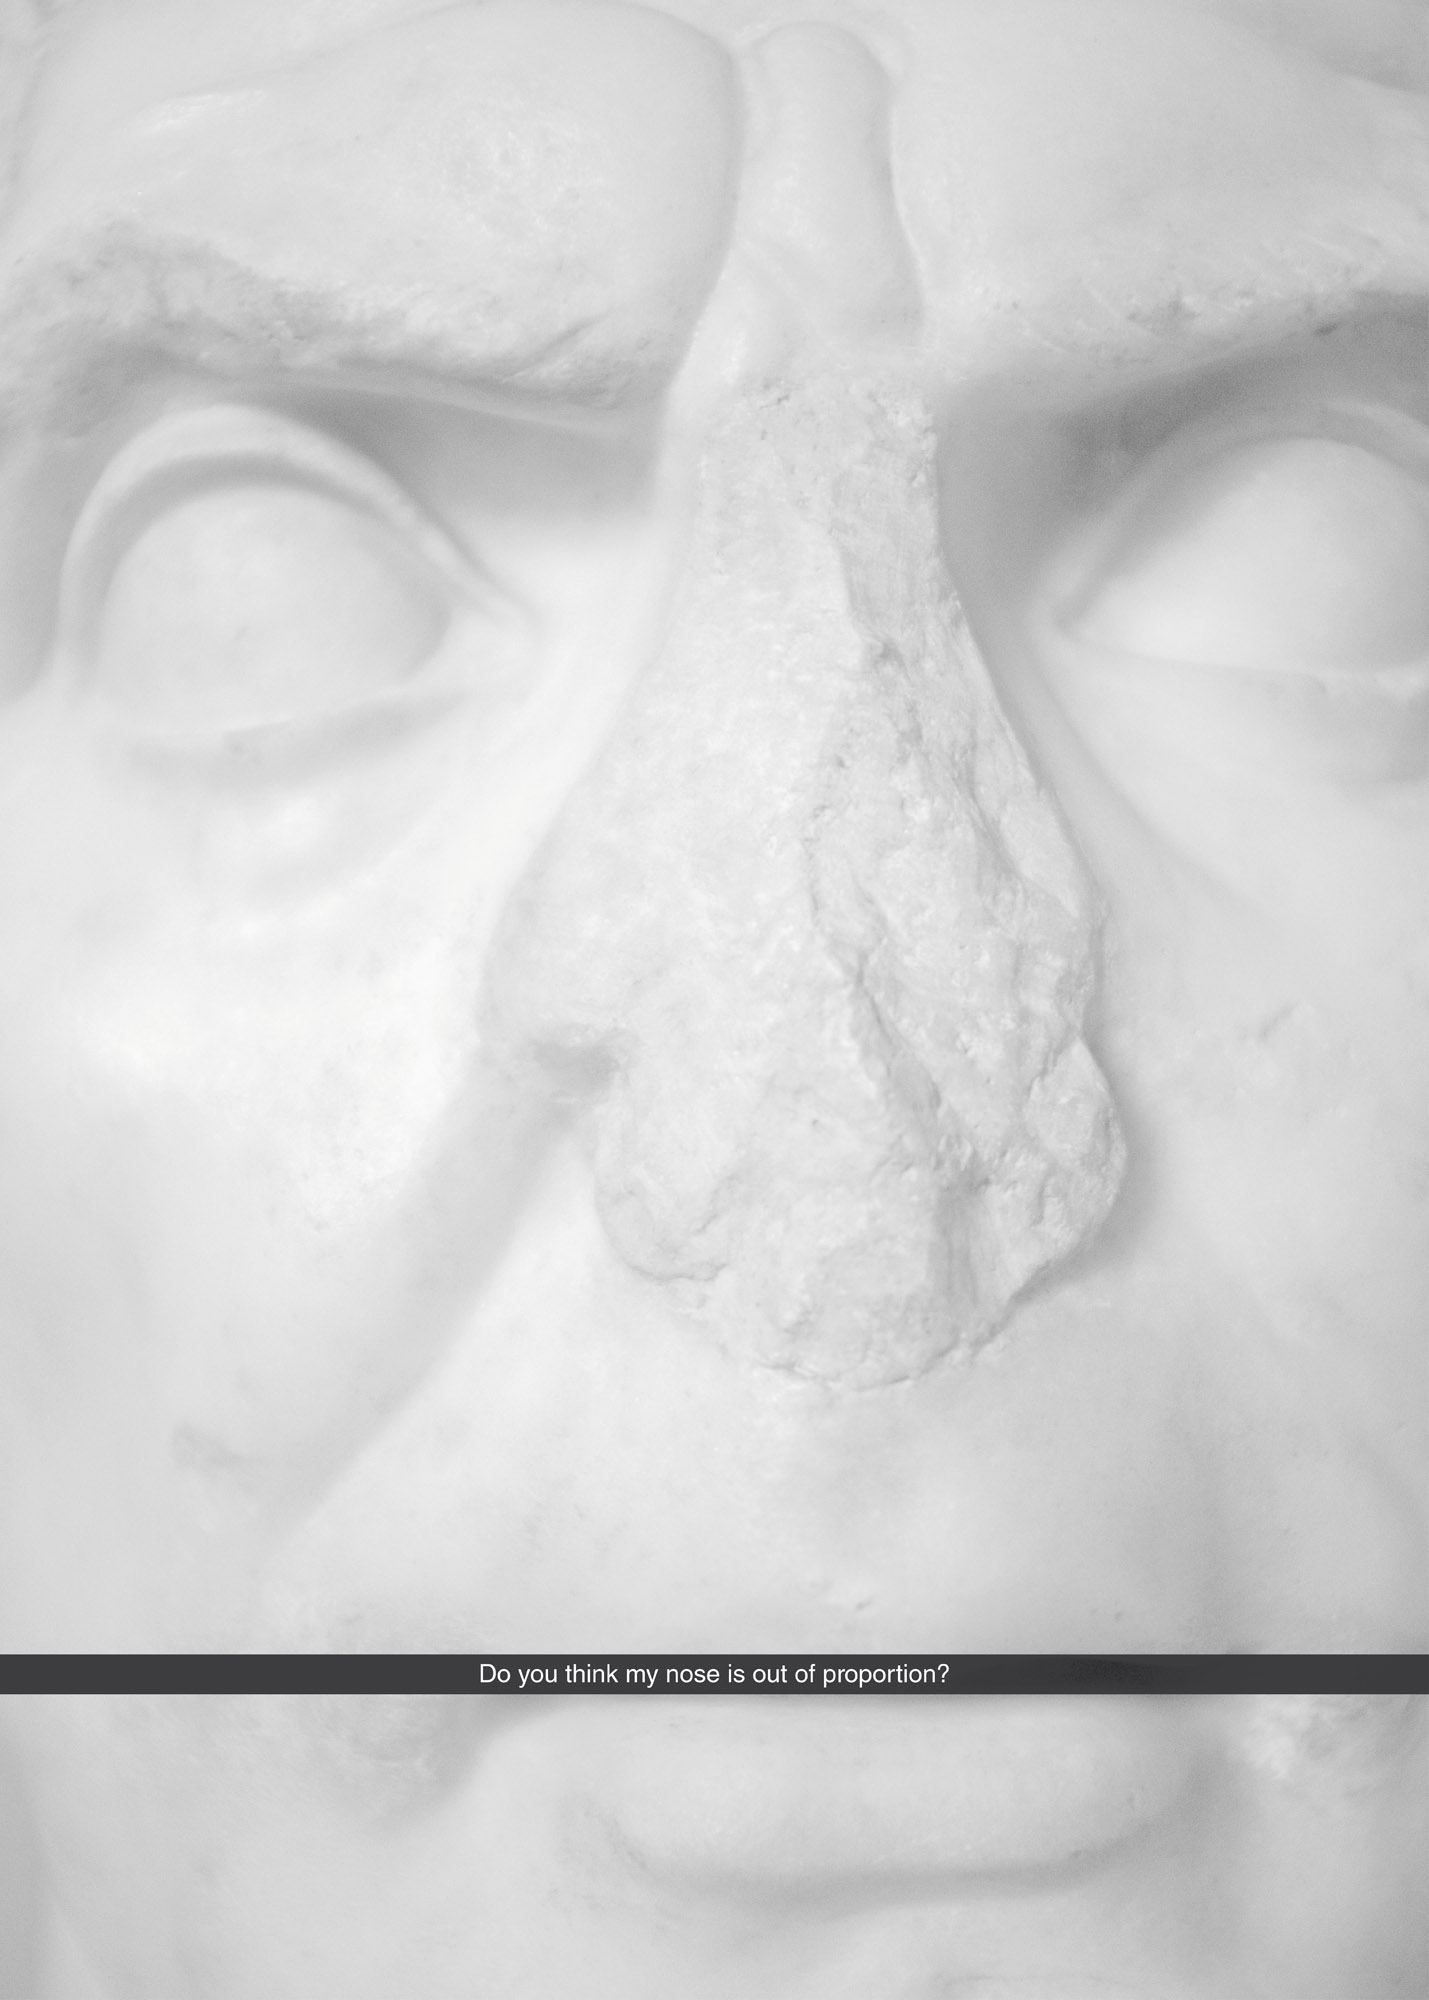 Sebastian Jung, Do you think my nose is out of proportion?, 2016, c-print, 70 x 50 cm